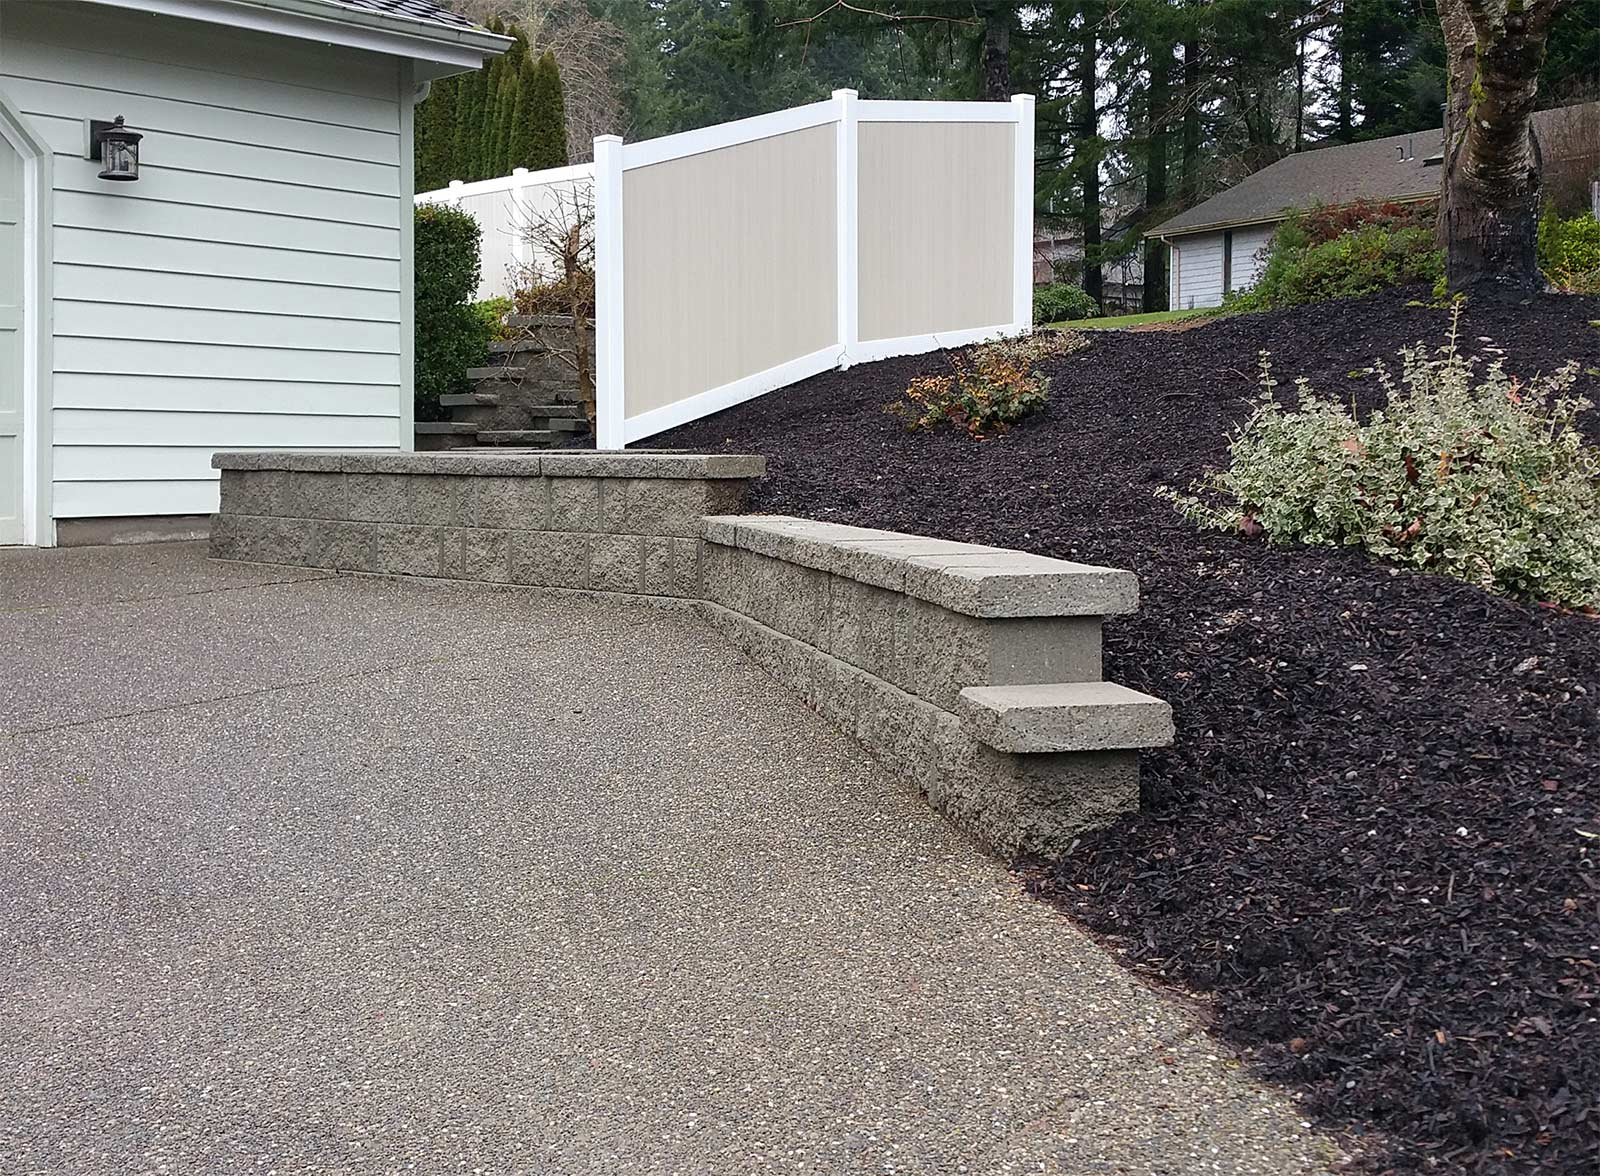 Tiered retaining wall with vinyl fencing in west olympia ajb retaining wall fence after retaining wall fence after baanklon Image collections